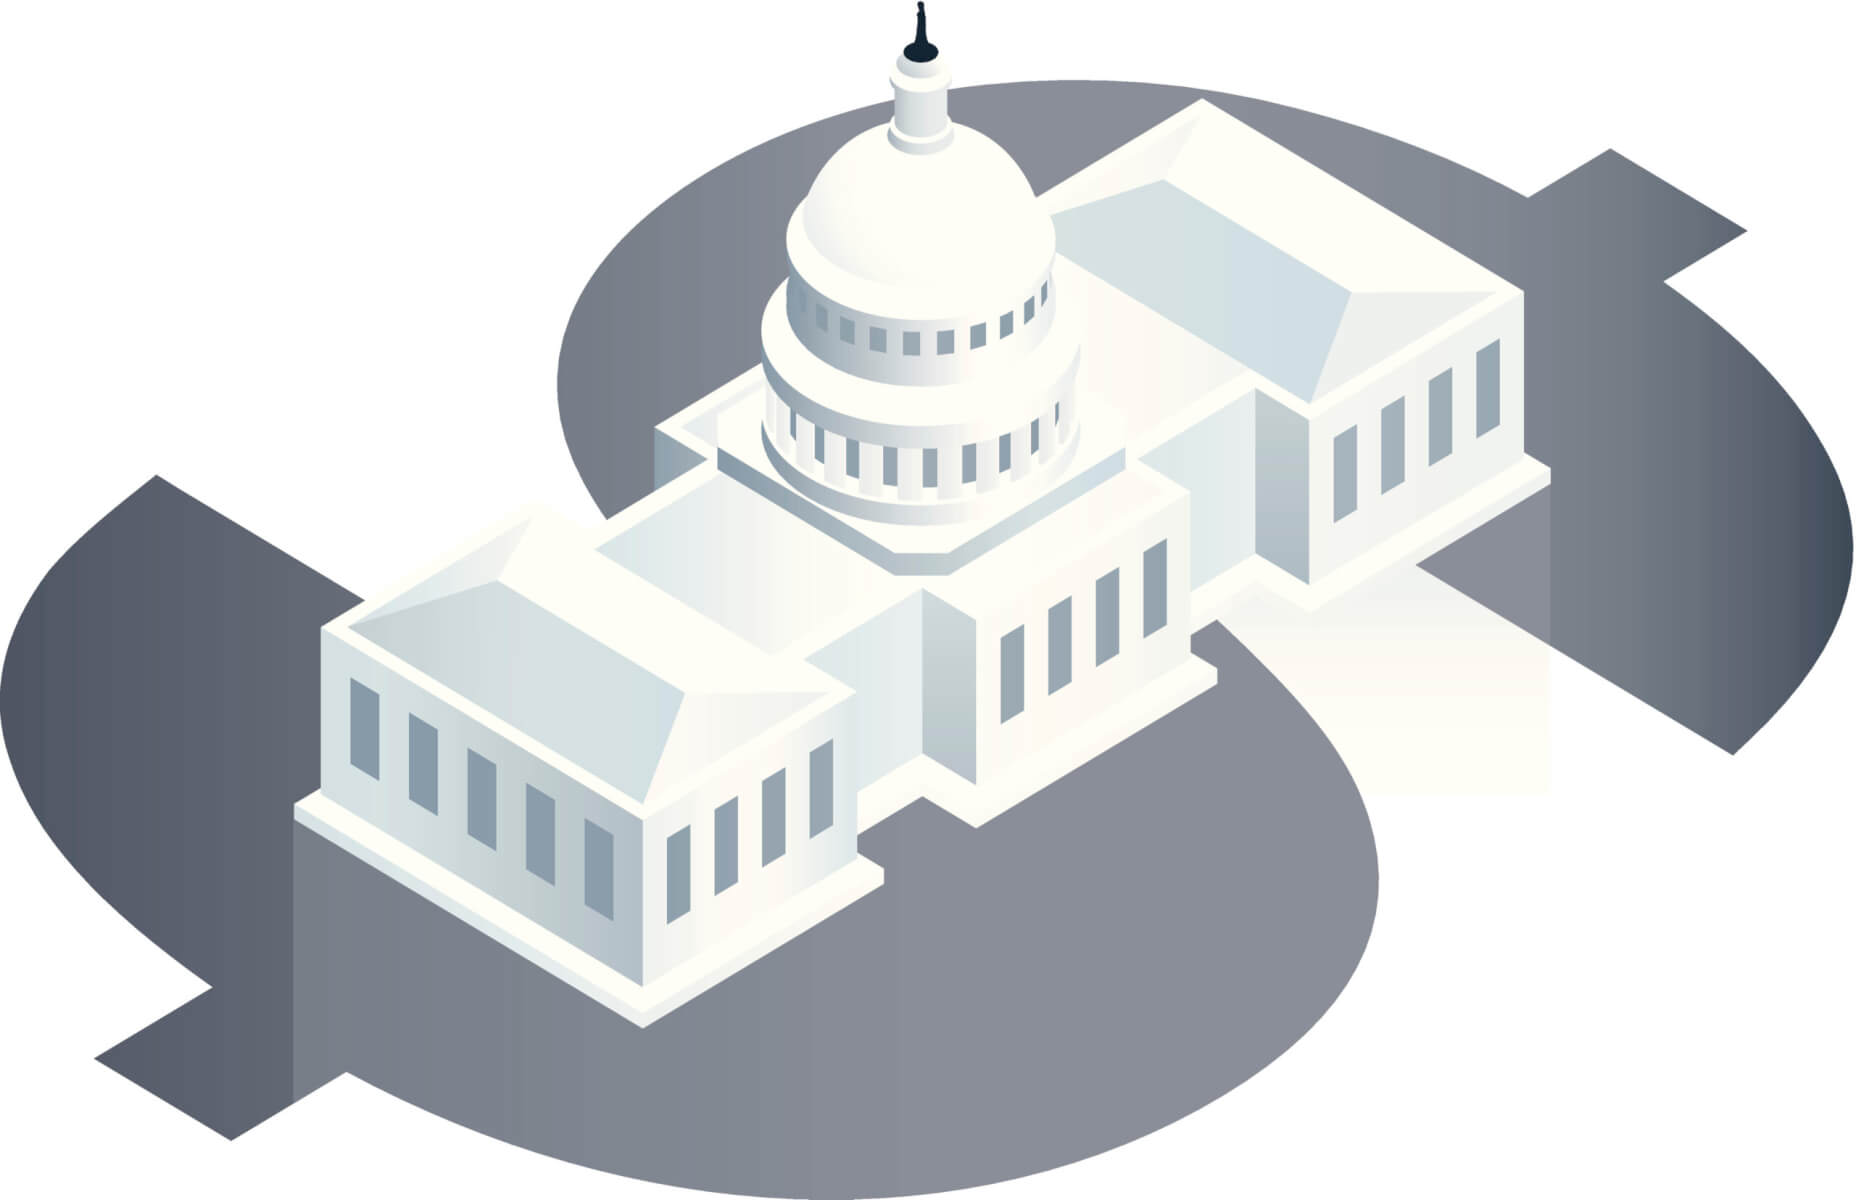 Vector Illustration of a simplified United States Capitol Building presented on a large dollar sign.